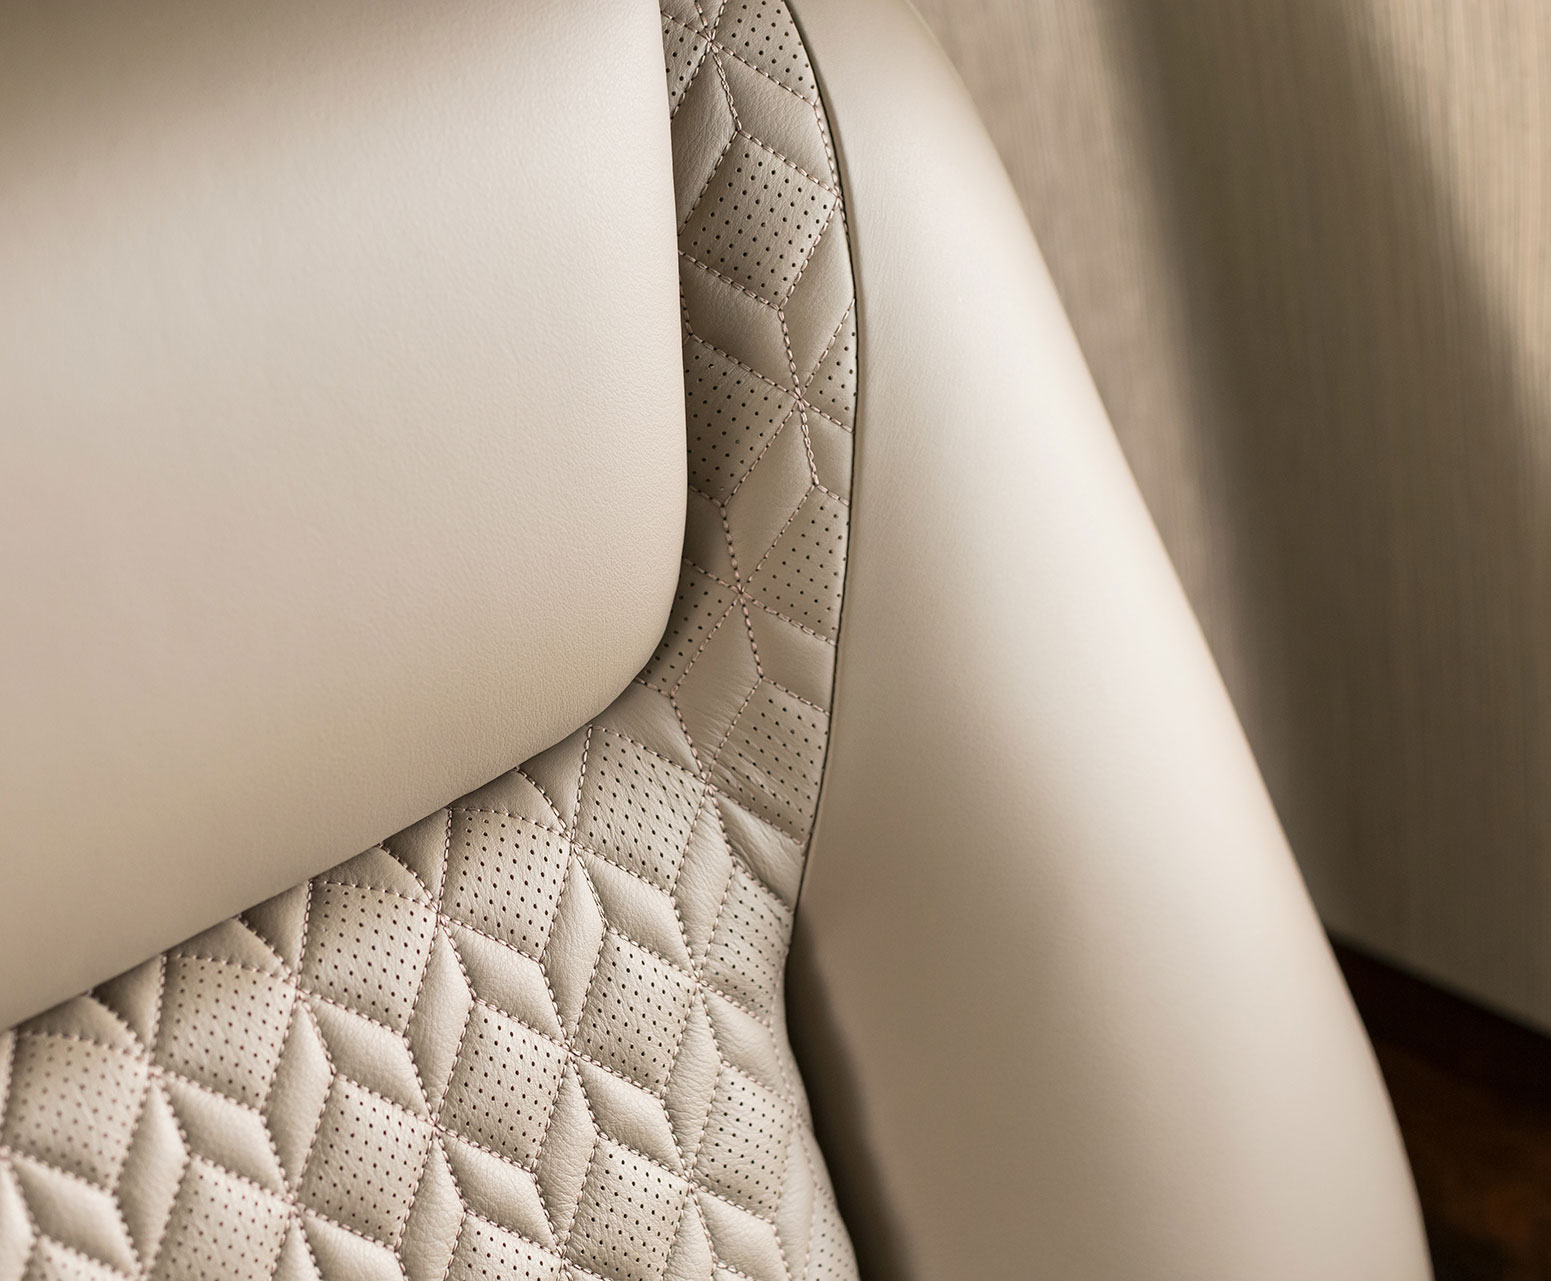 A close-up of a beige leather seat.